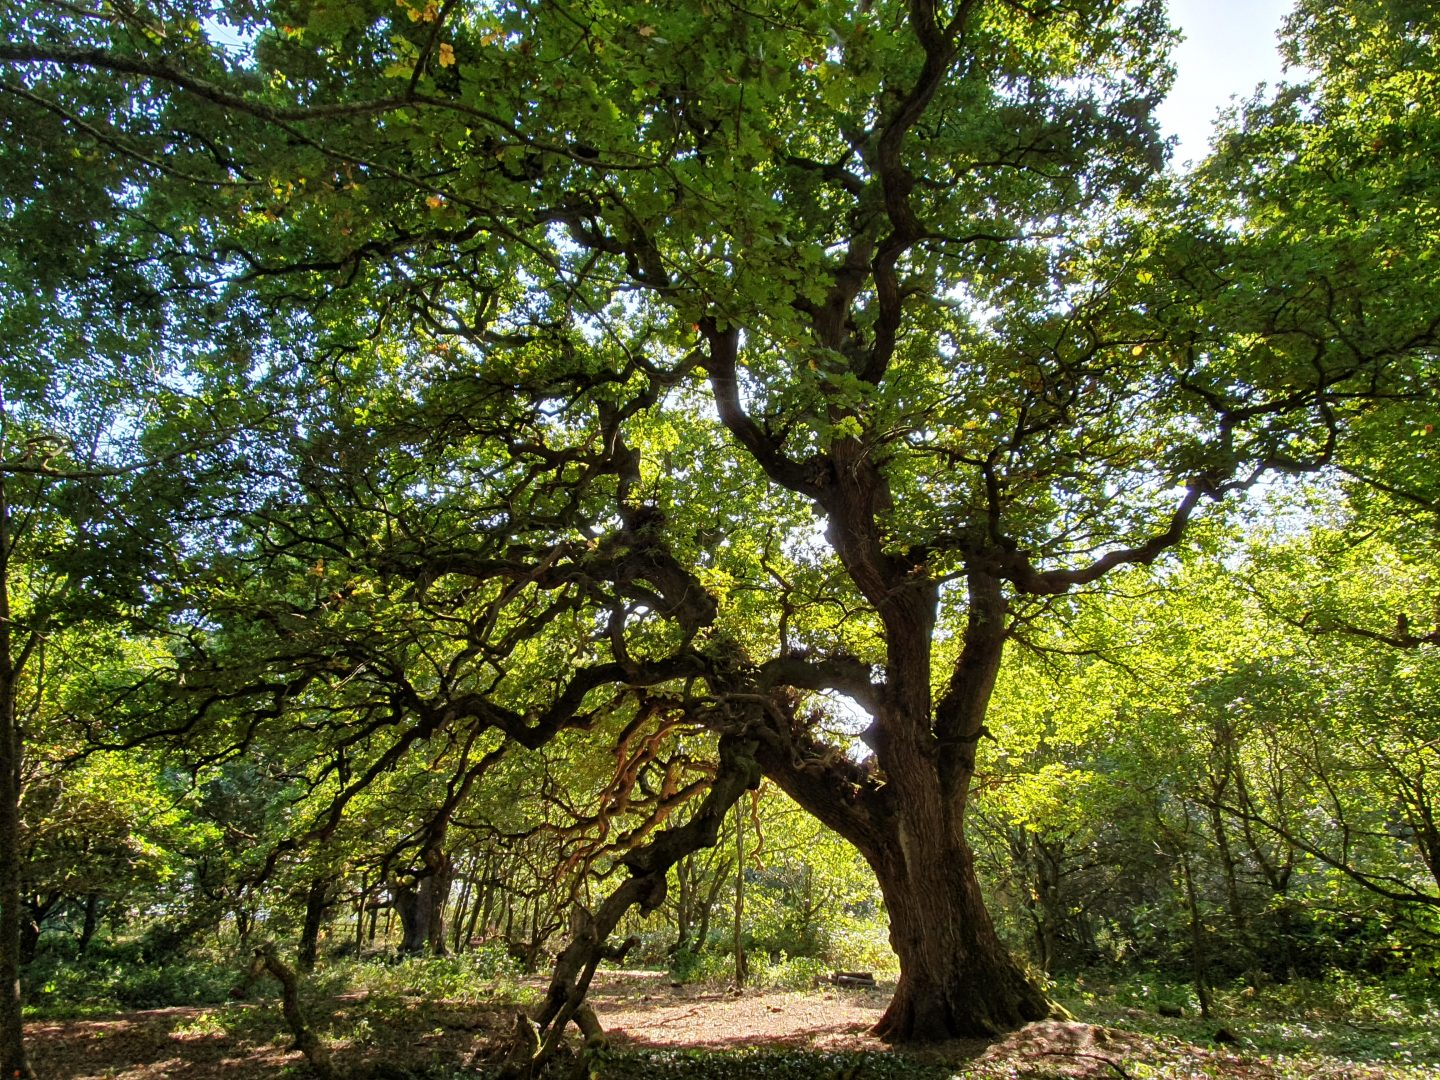 An old oak tree in the middle of a managed wood